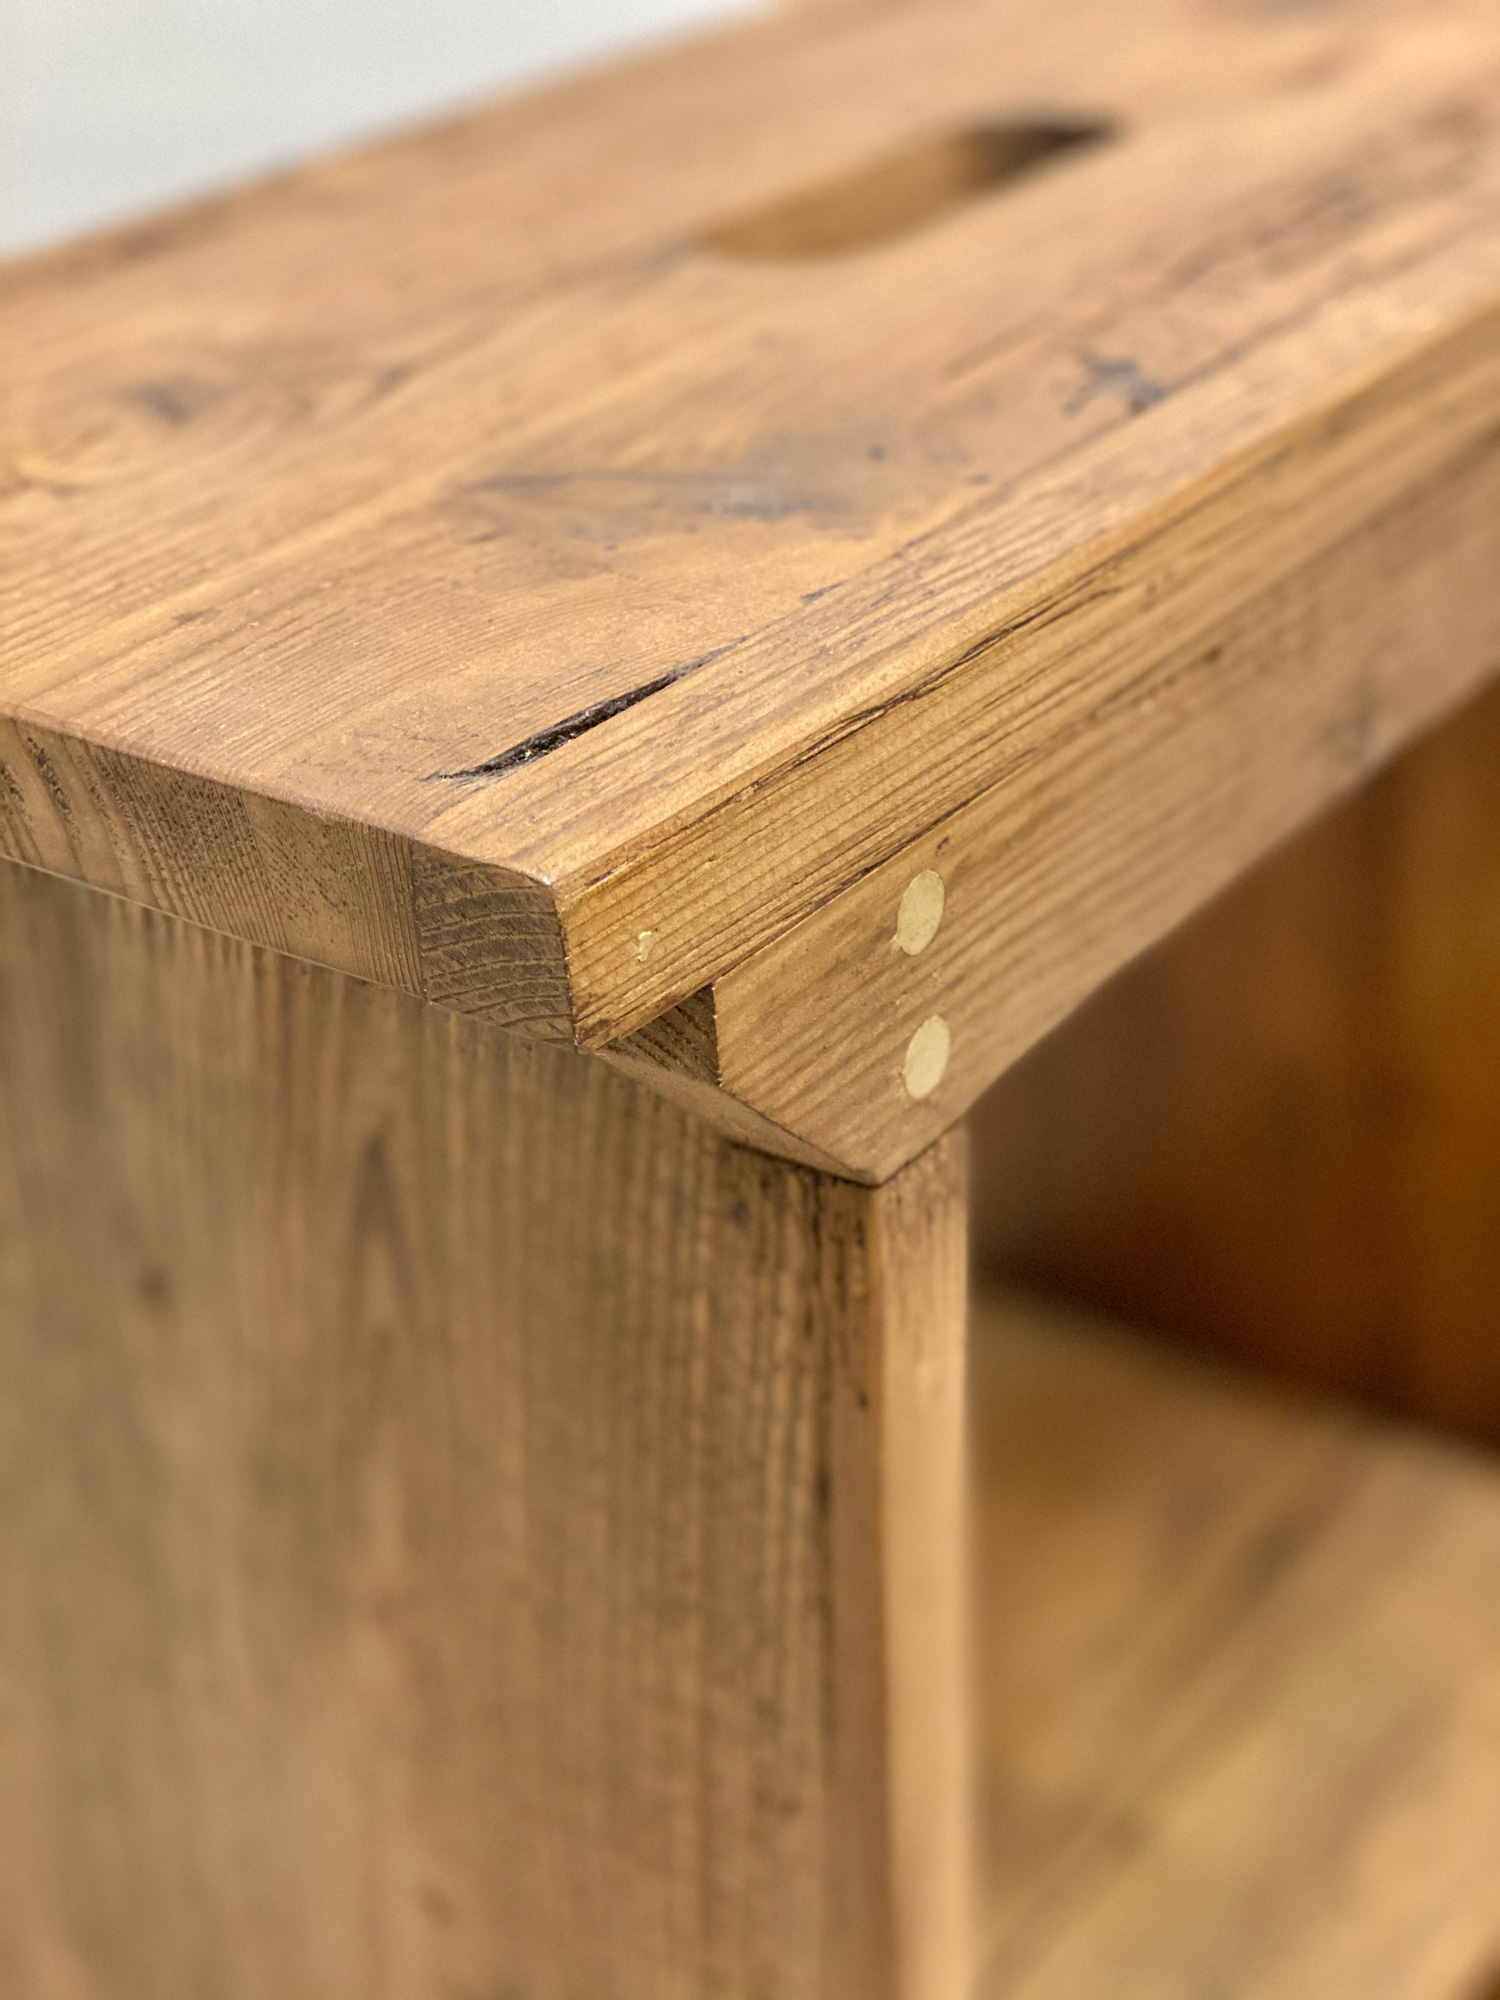 Edge detail of reclaimed pine stool